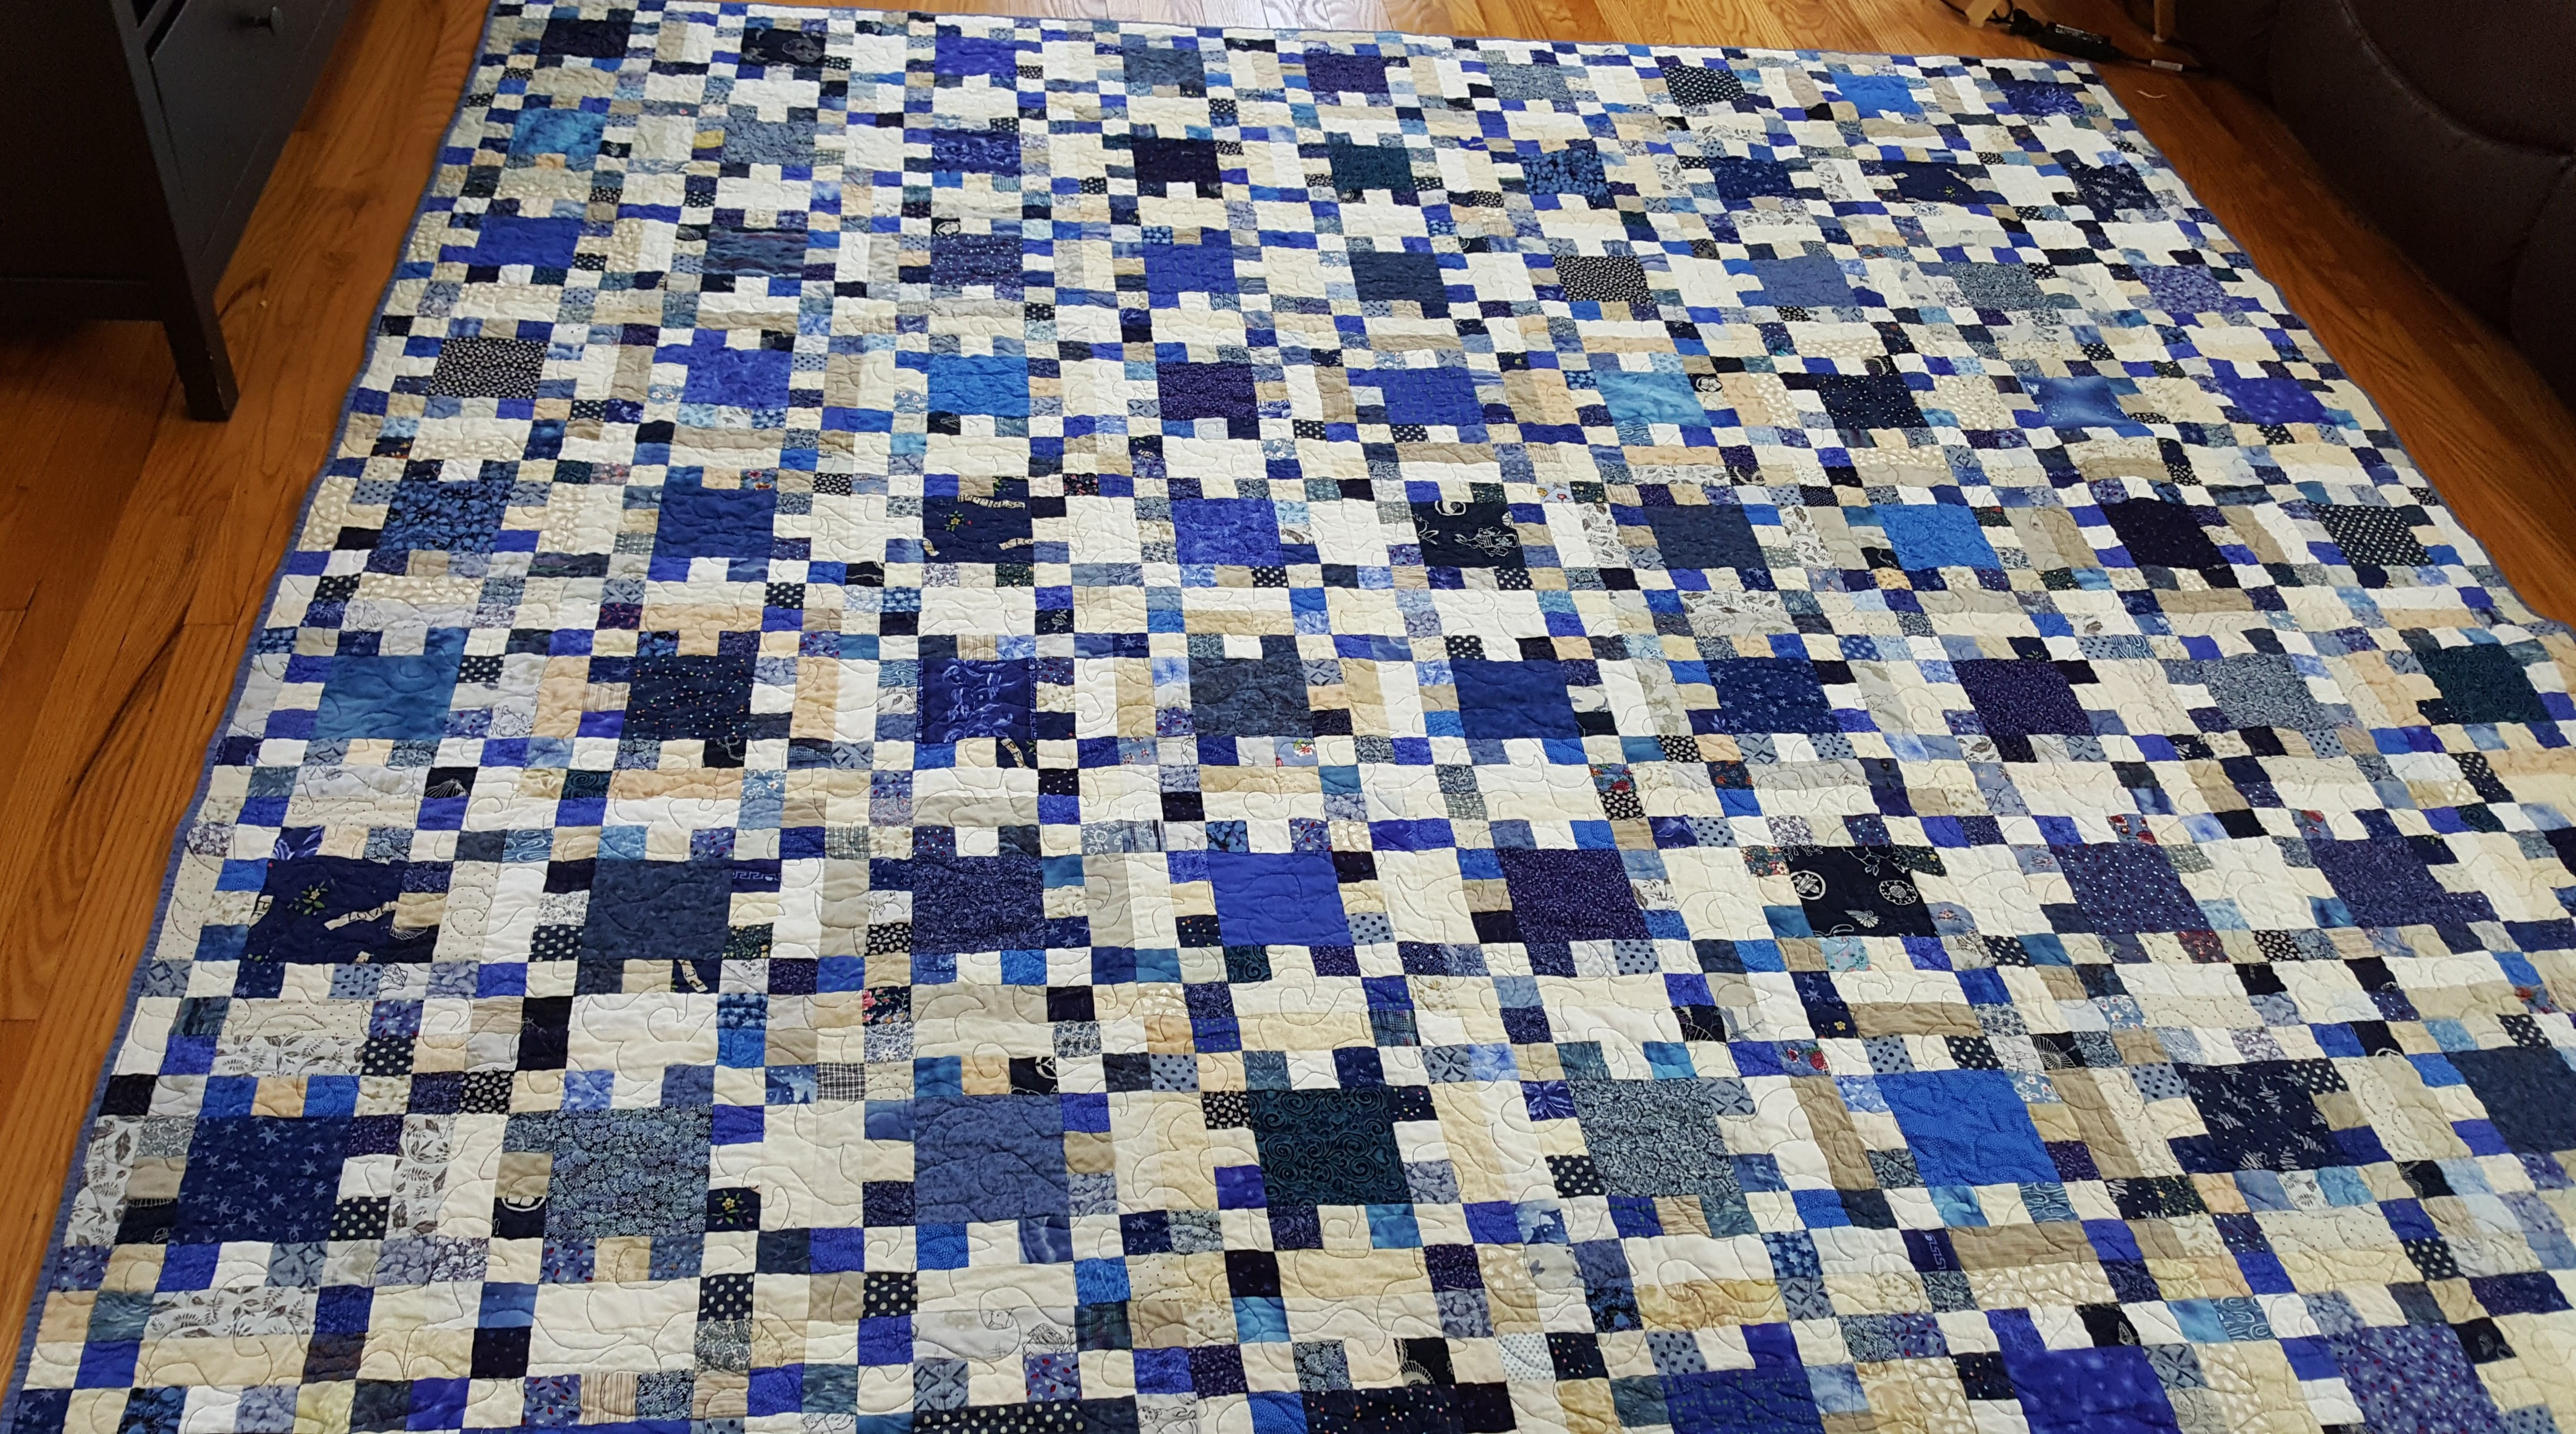 Idaho Square Dance queen size quilt